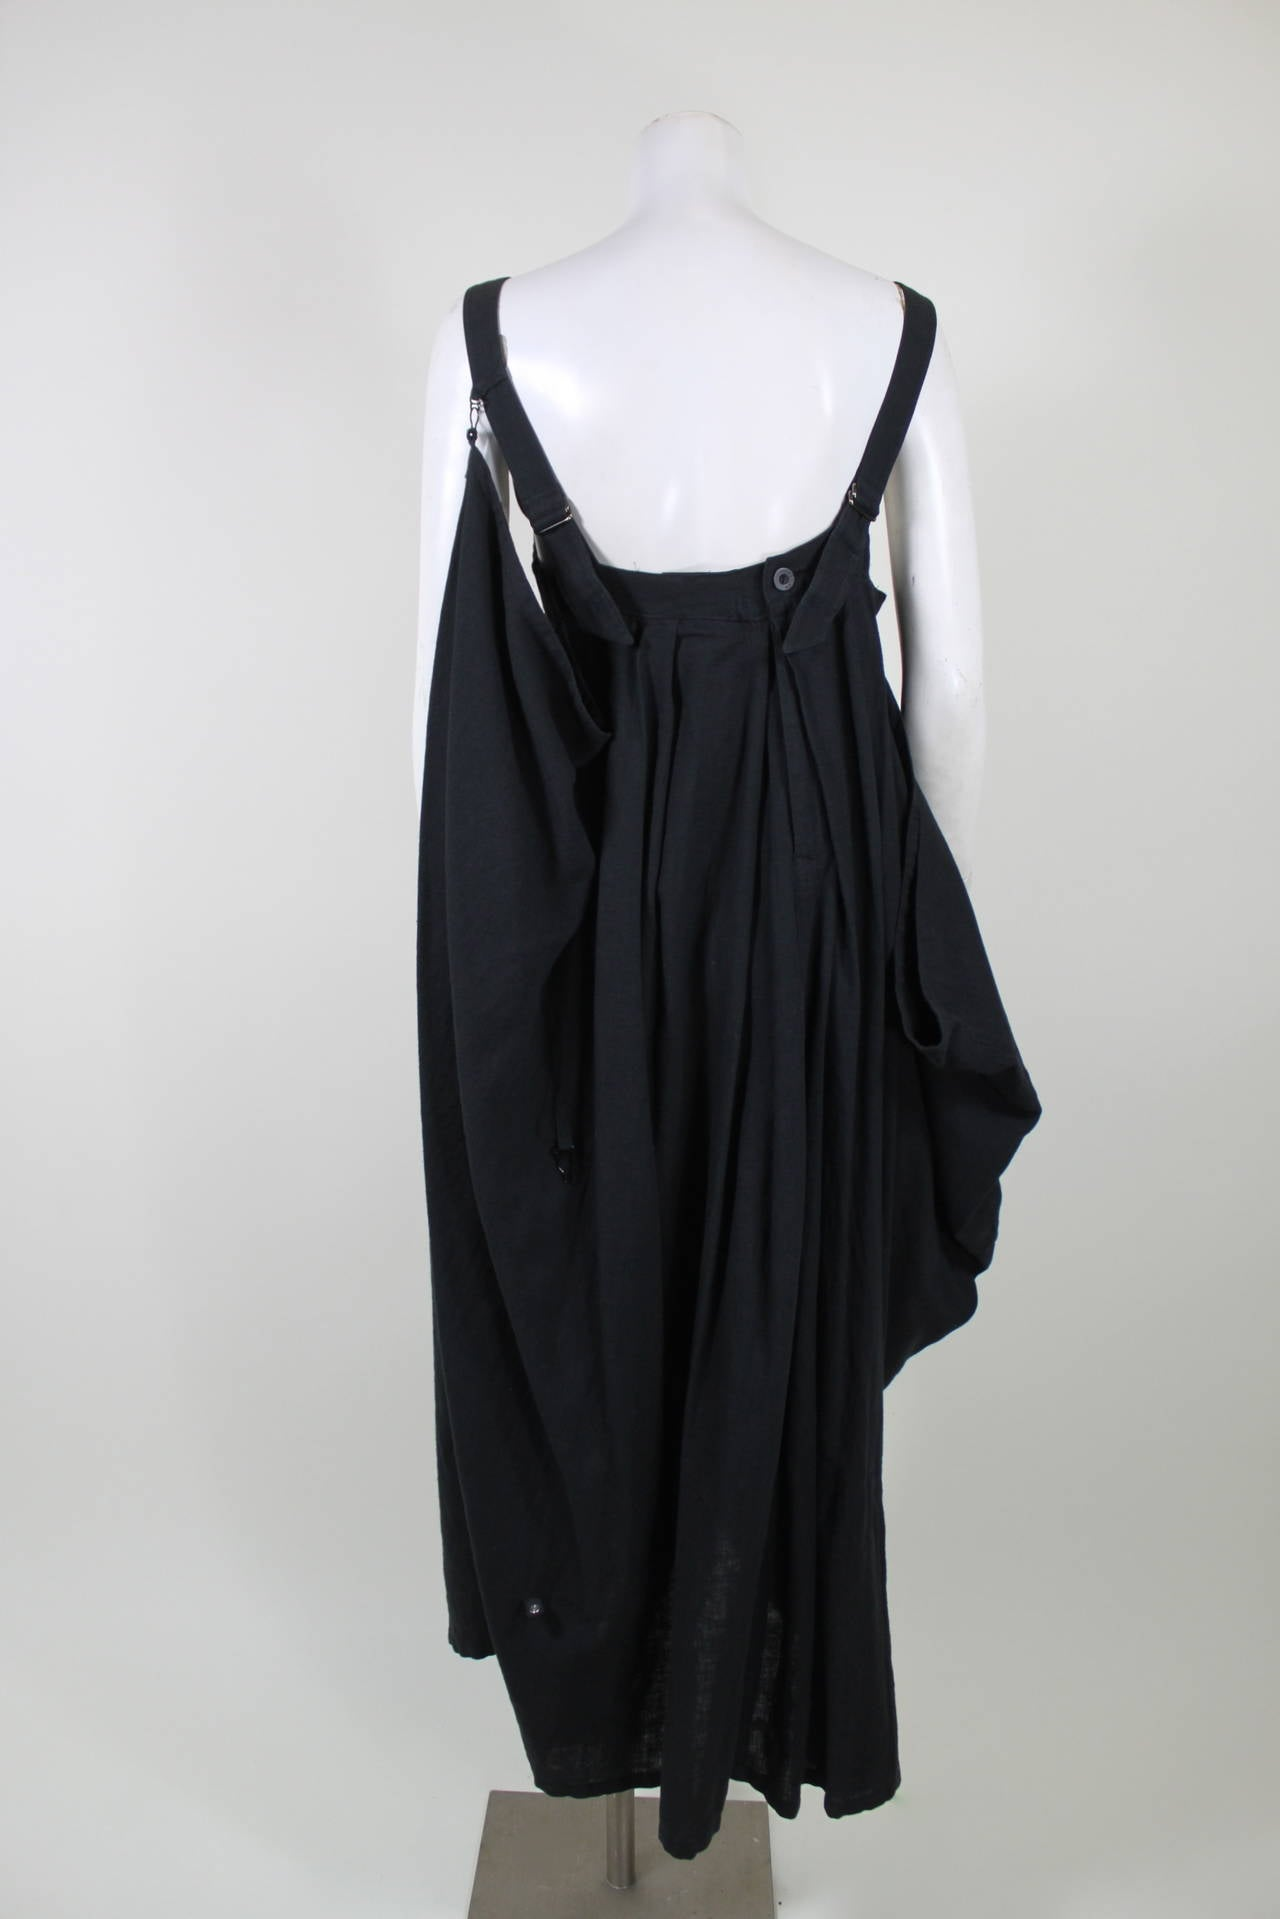 Kansai Black Linen Dress with Cocoon Coat 5